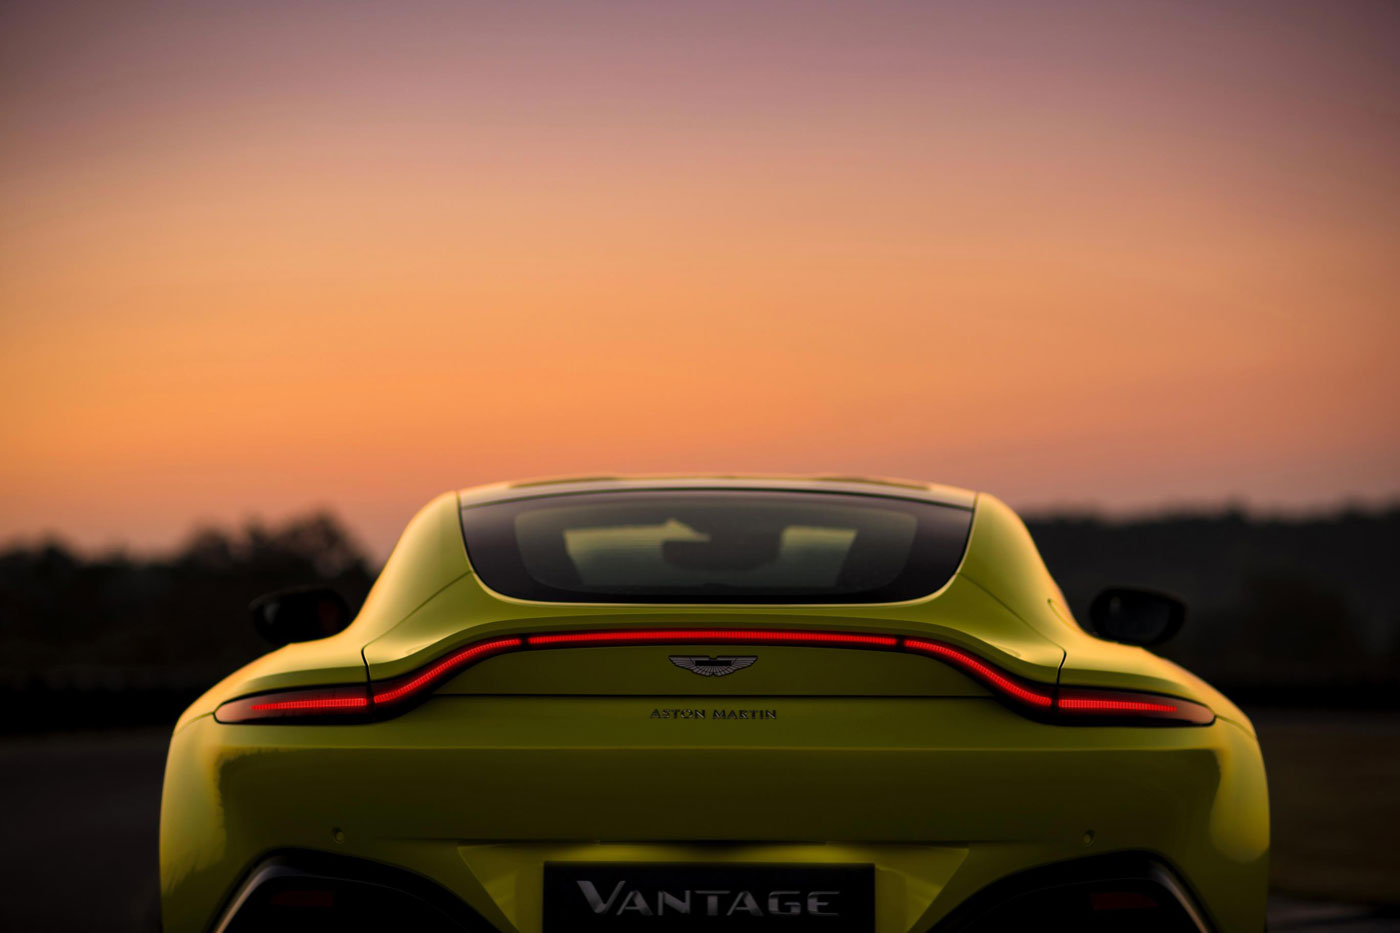 New Vantage: Bold New Look, Intensified Performance and Dynamics 14